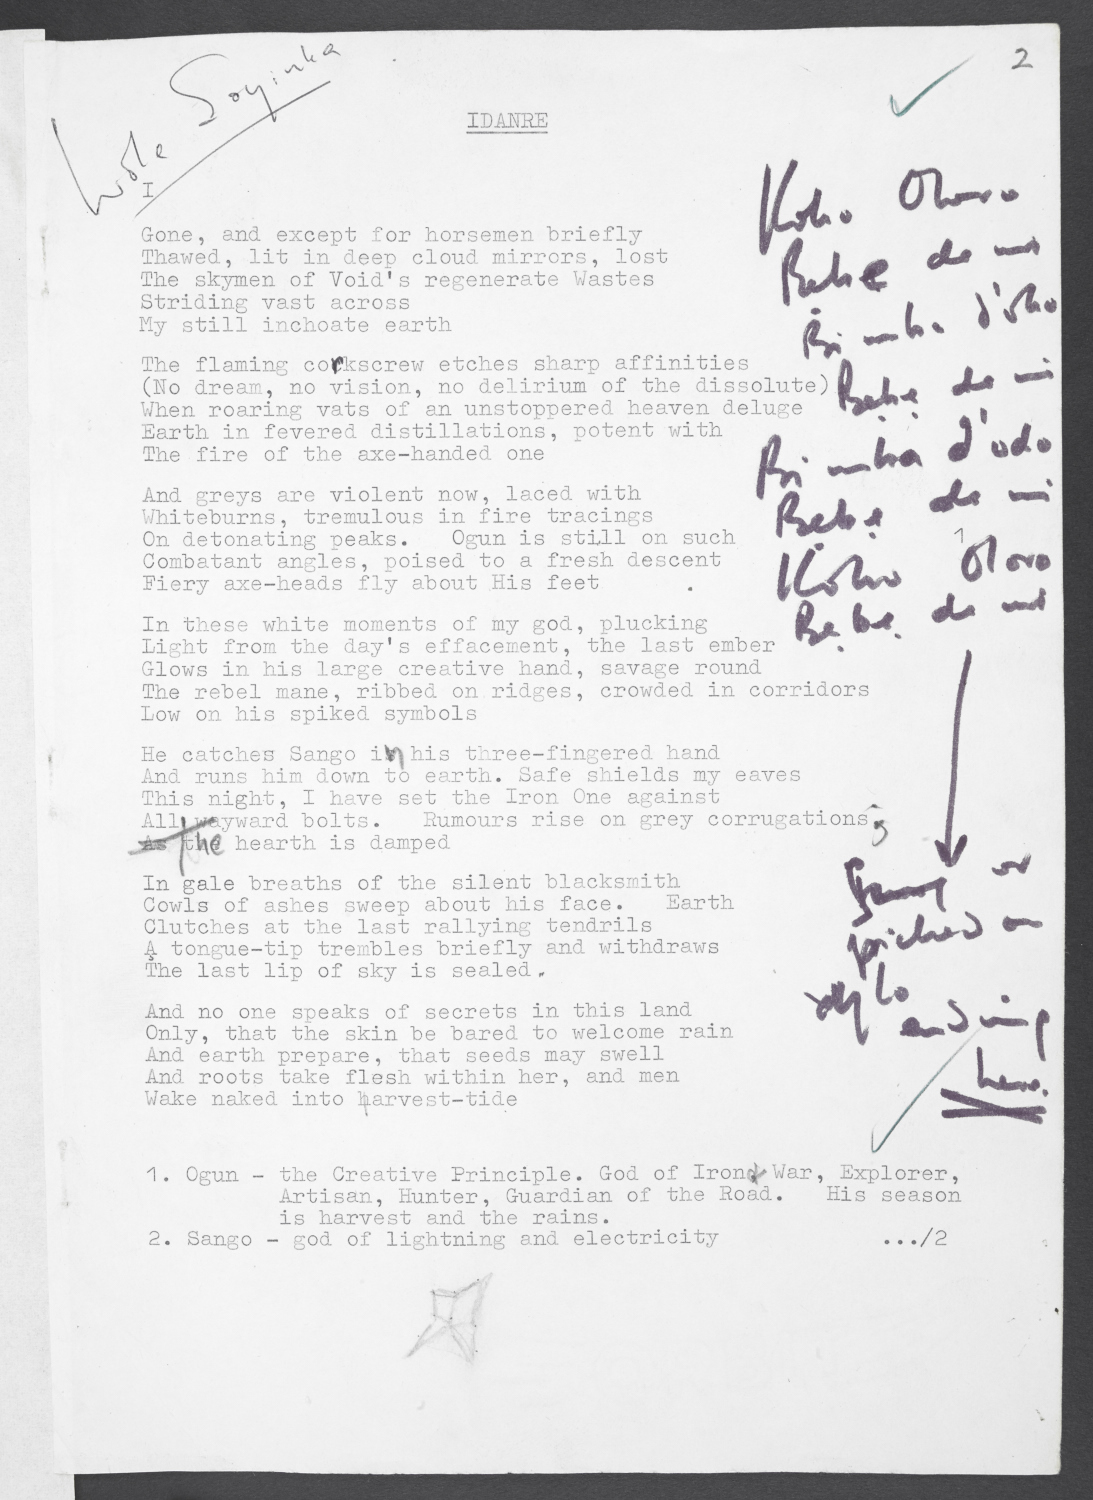 First page of Wole Soyinka's annotated typescript of 'Idanre' poem [1965] (c) Wole Soyinka